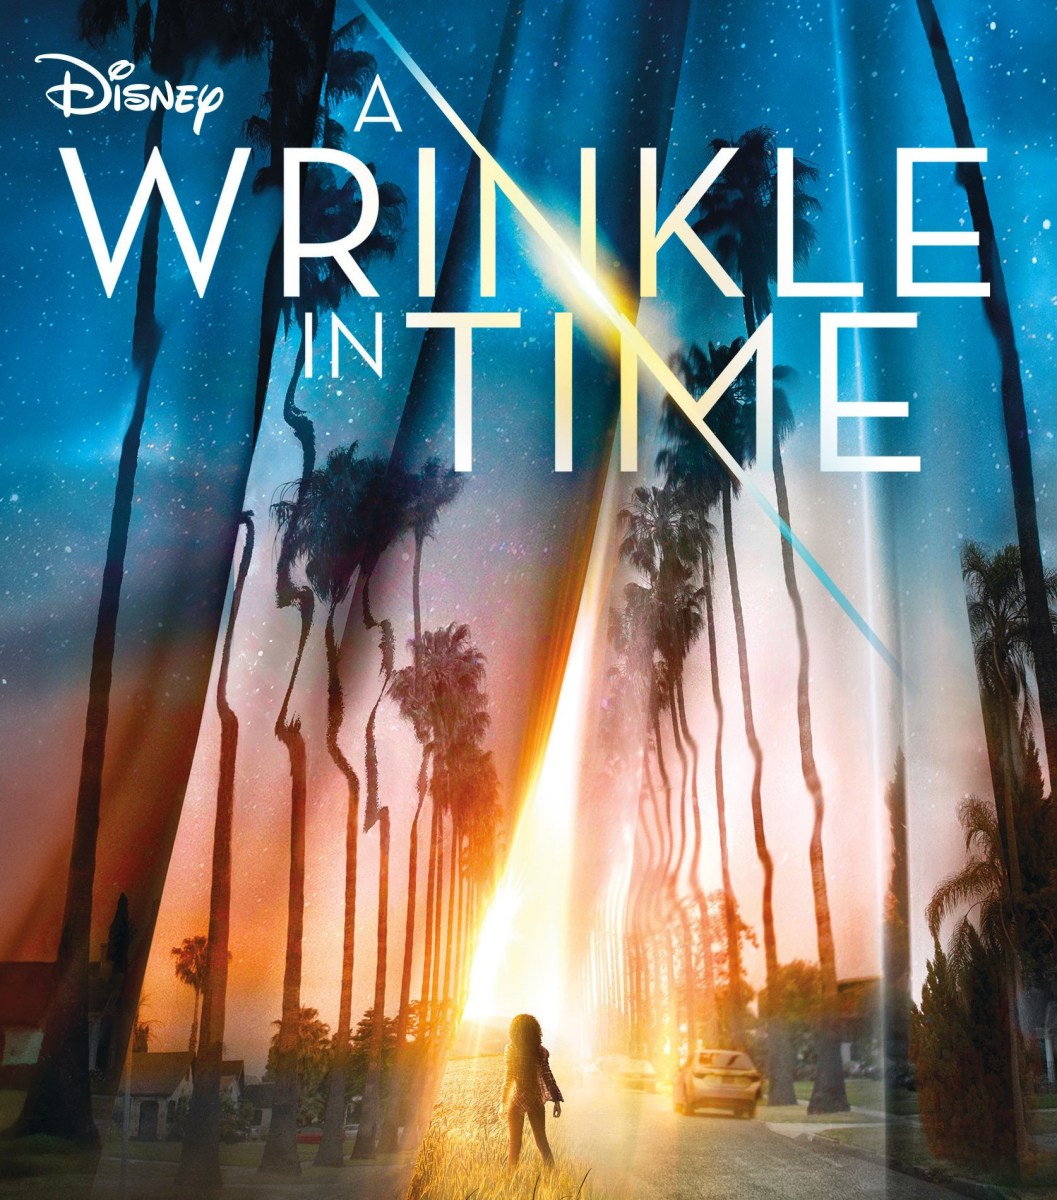 A Wrinkle in Time is Sill a Beloved Trippy Classic